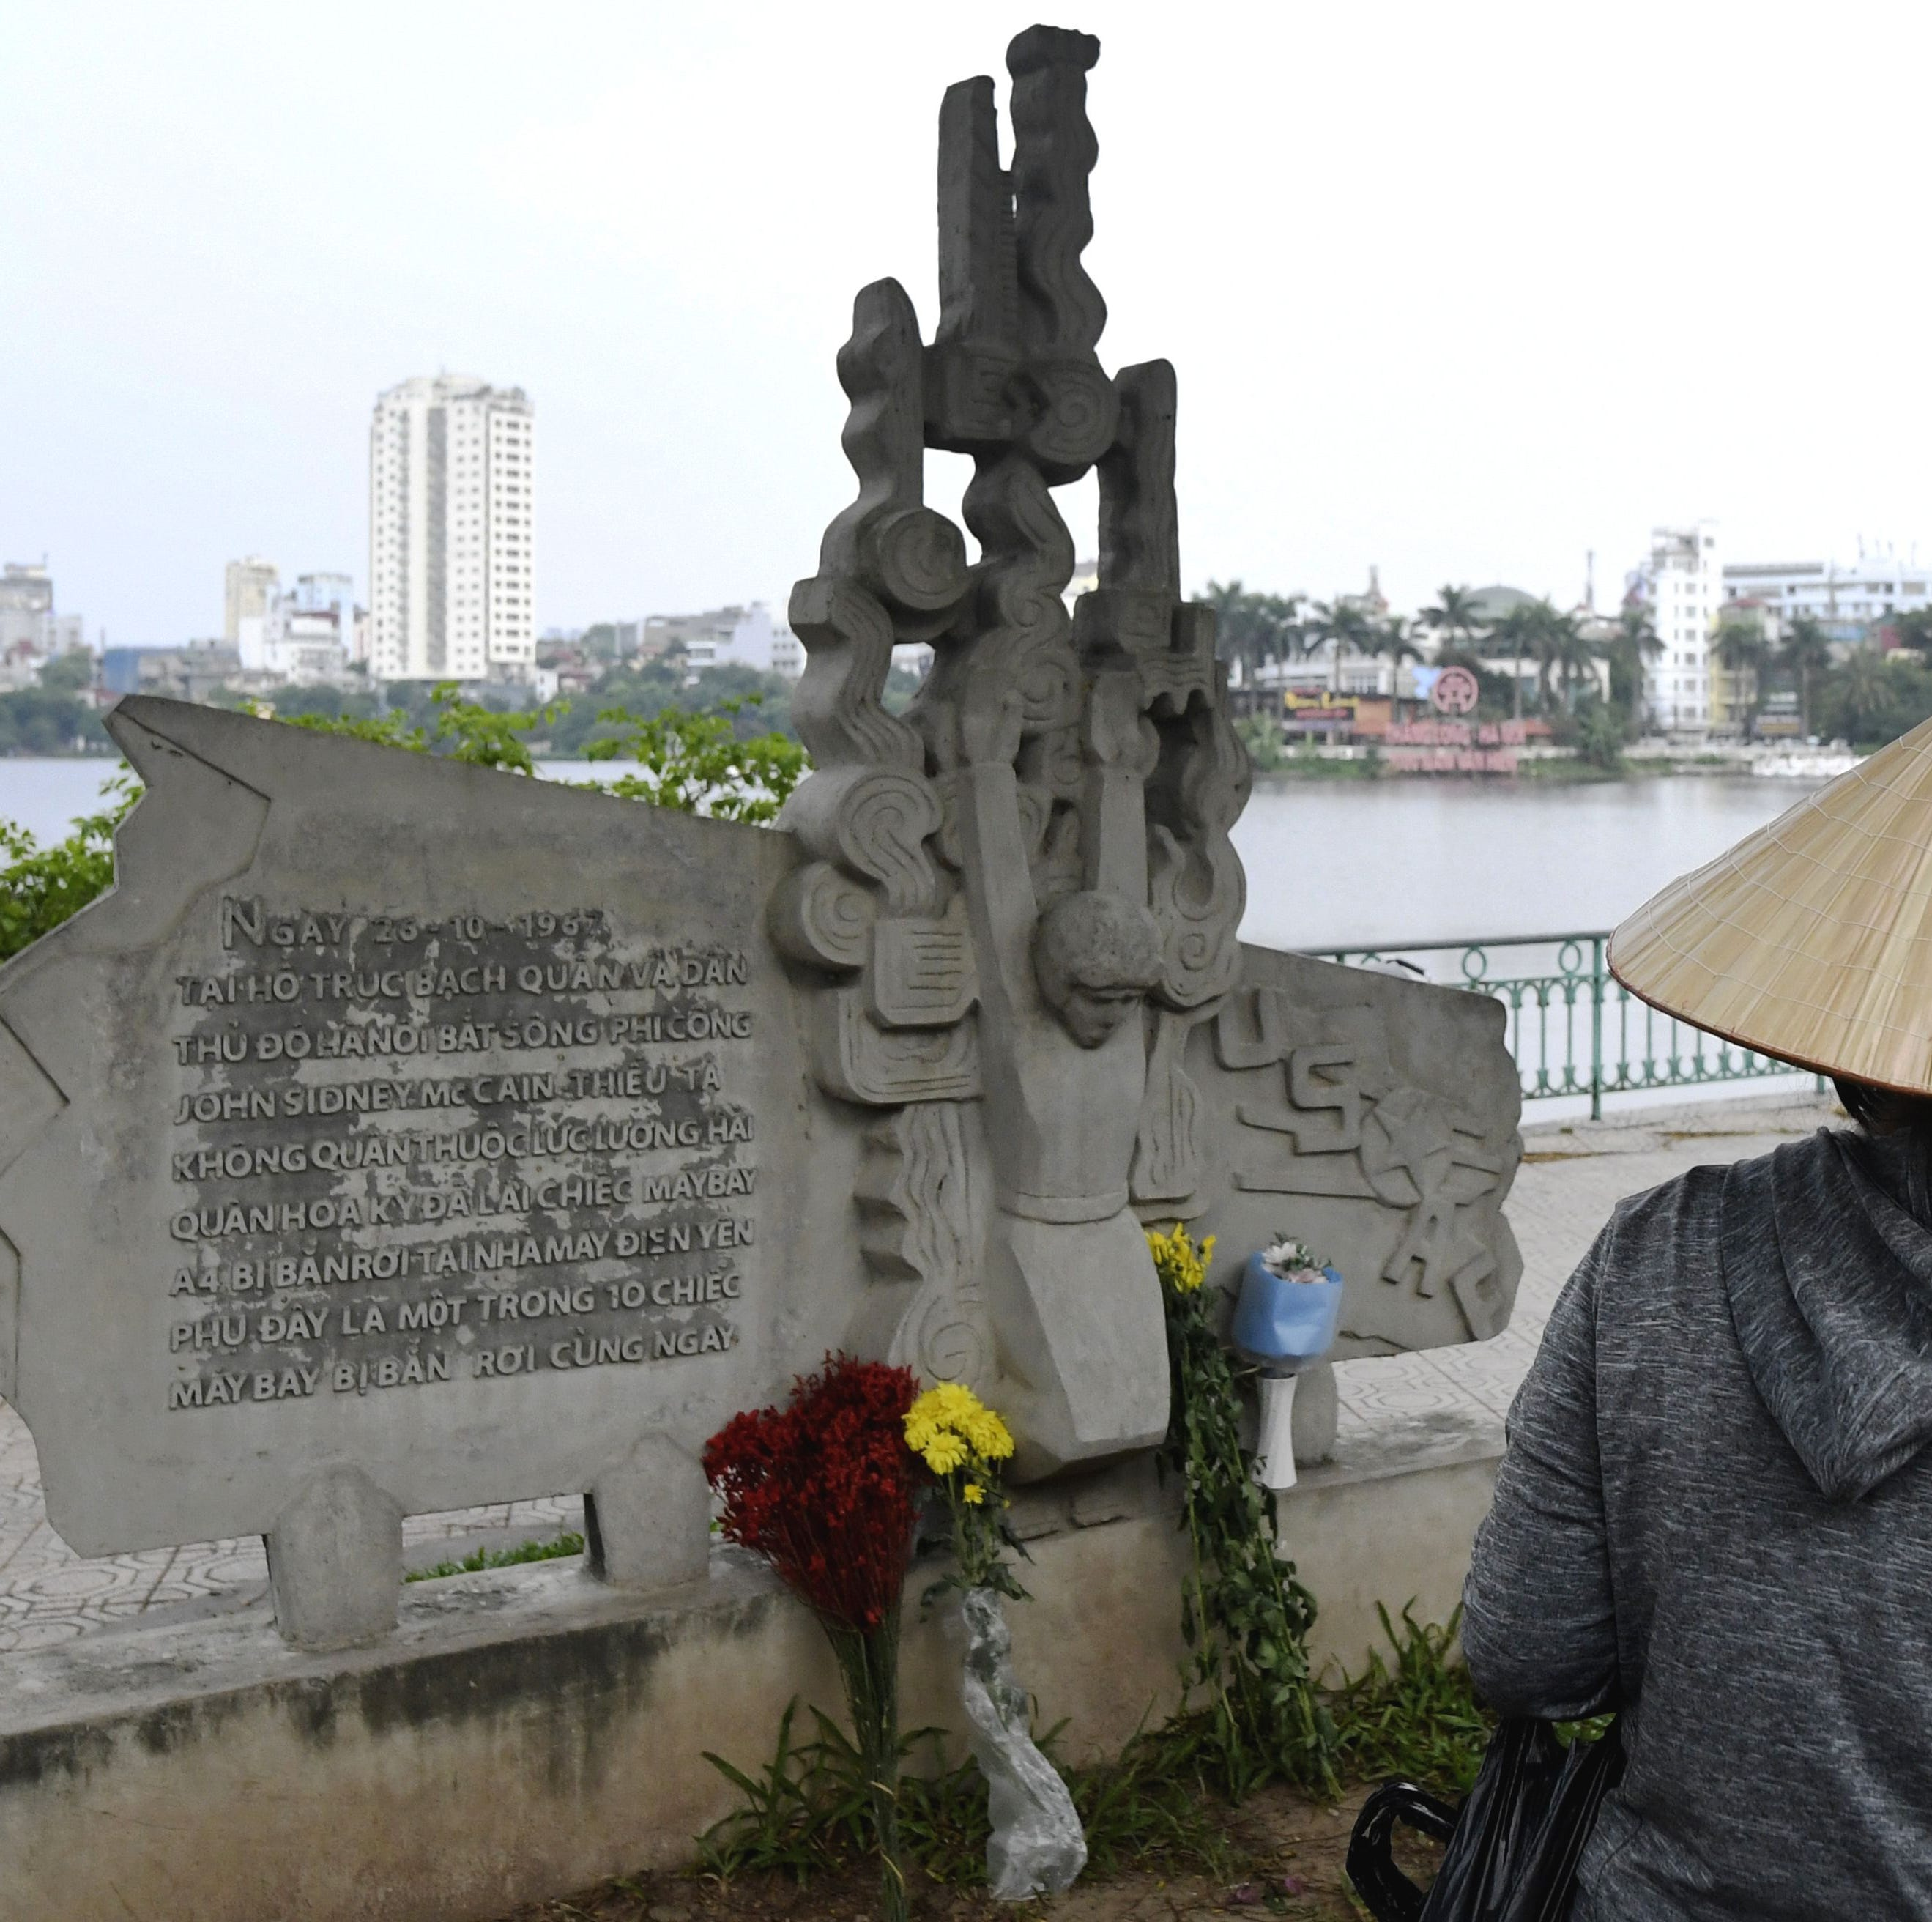 Flowers for the late Sen. John McCain on Aug. 25, 2018, at a sculpture depicting his capture in 1967 in Hanoi.